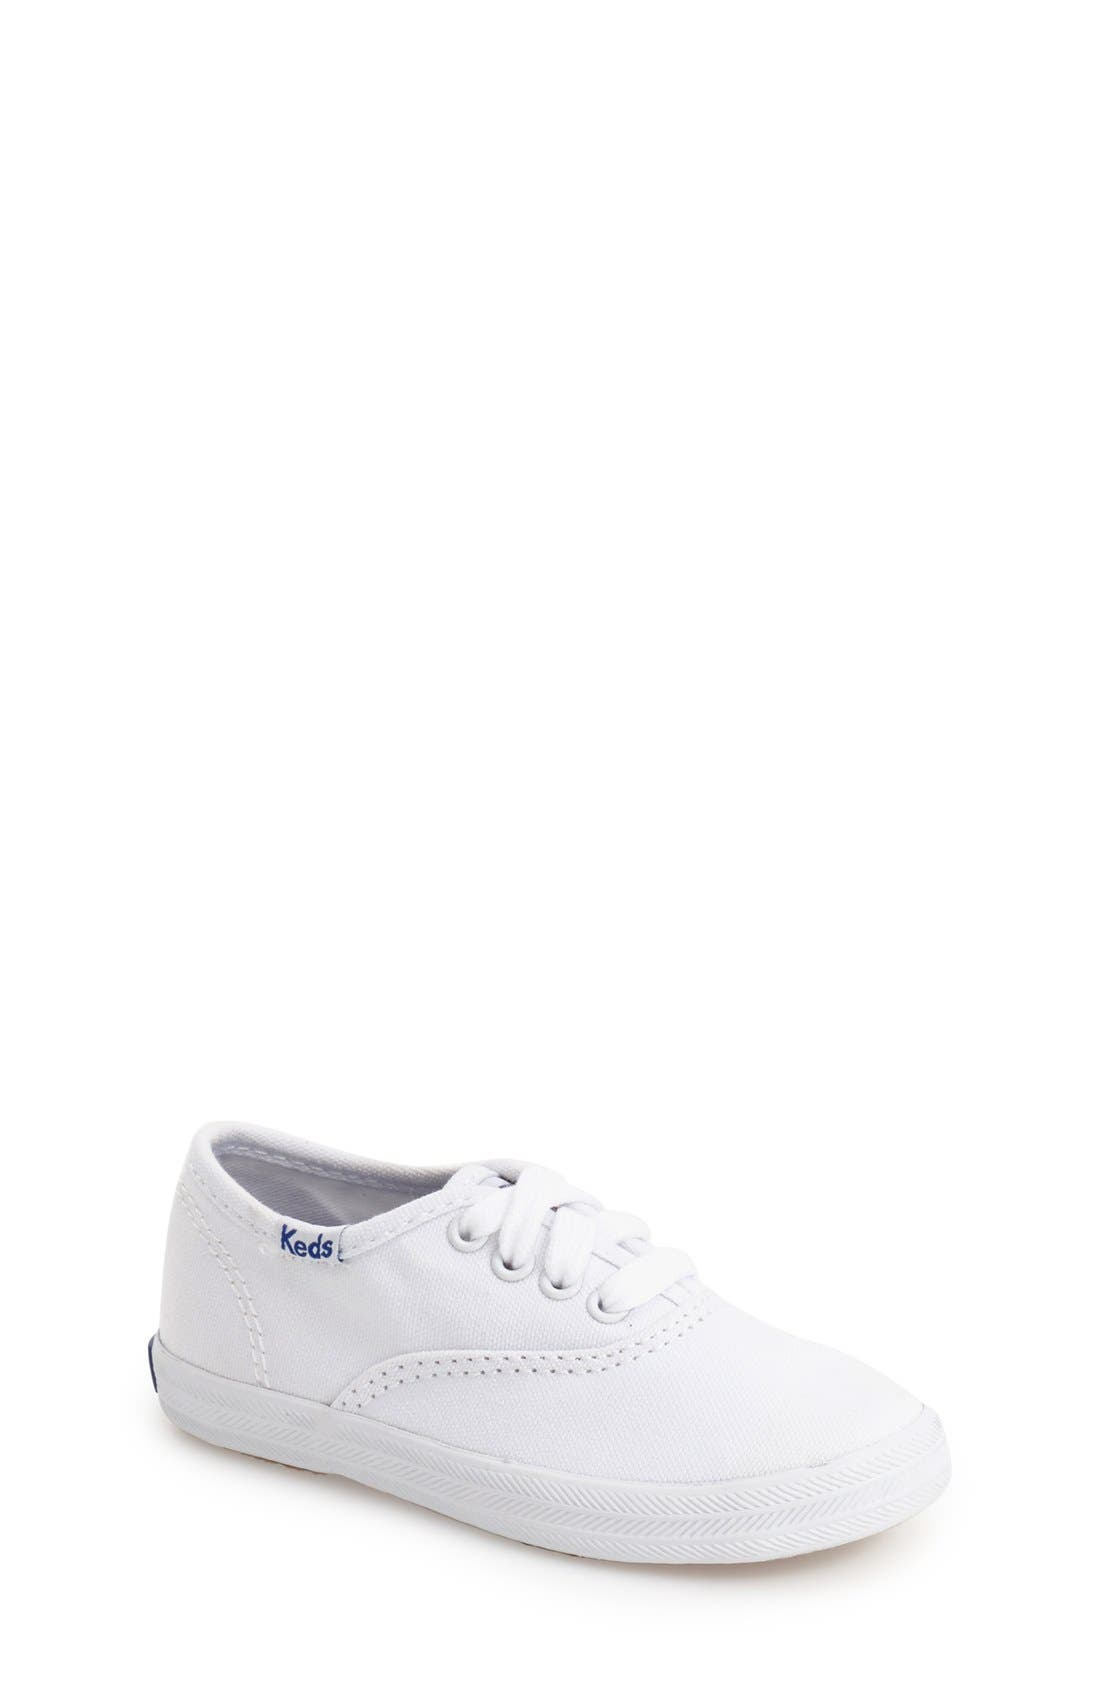 'Champion Canvas' Sneaker,                             Main thumbnail 1, color,                             White